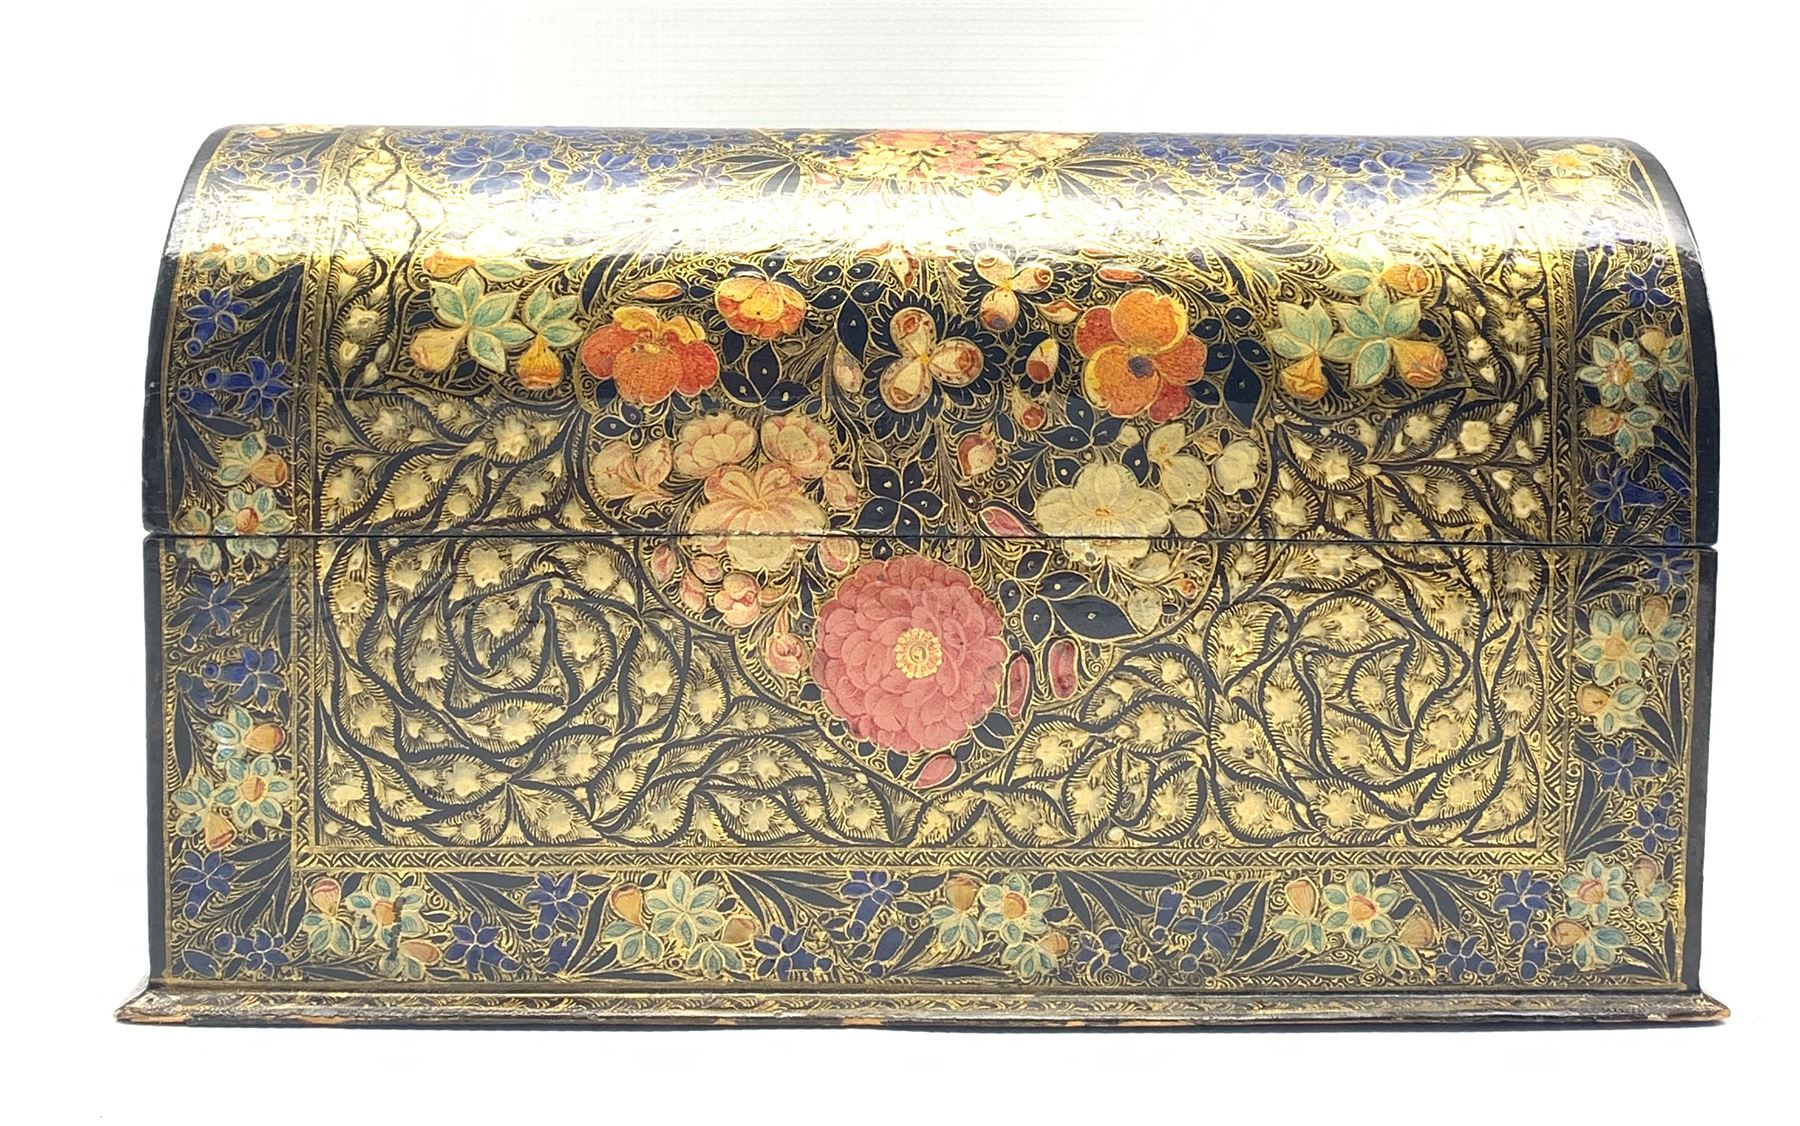 Kashmiri lacquered stationery casket with domed cover and divided interior painted with flower heads